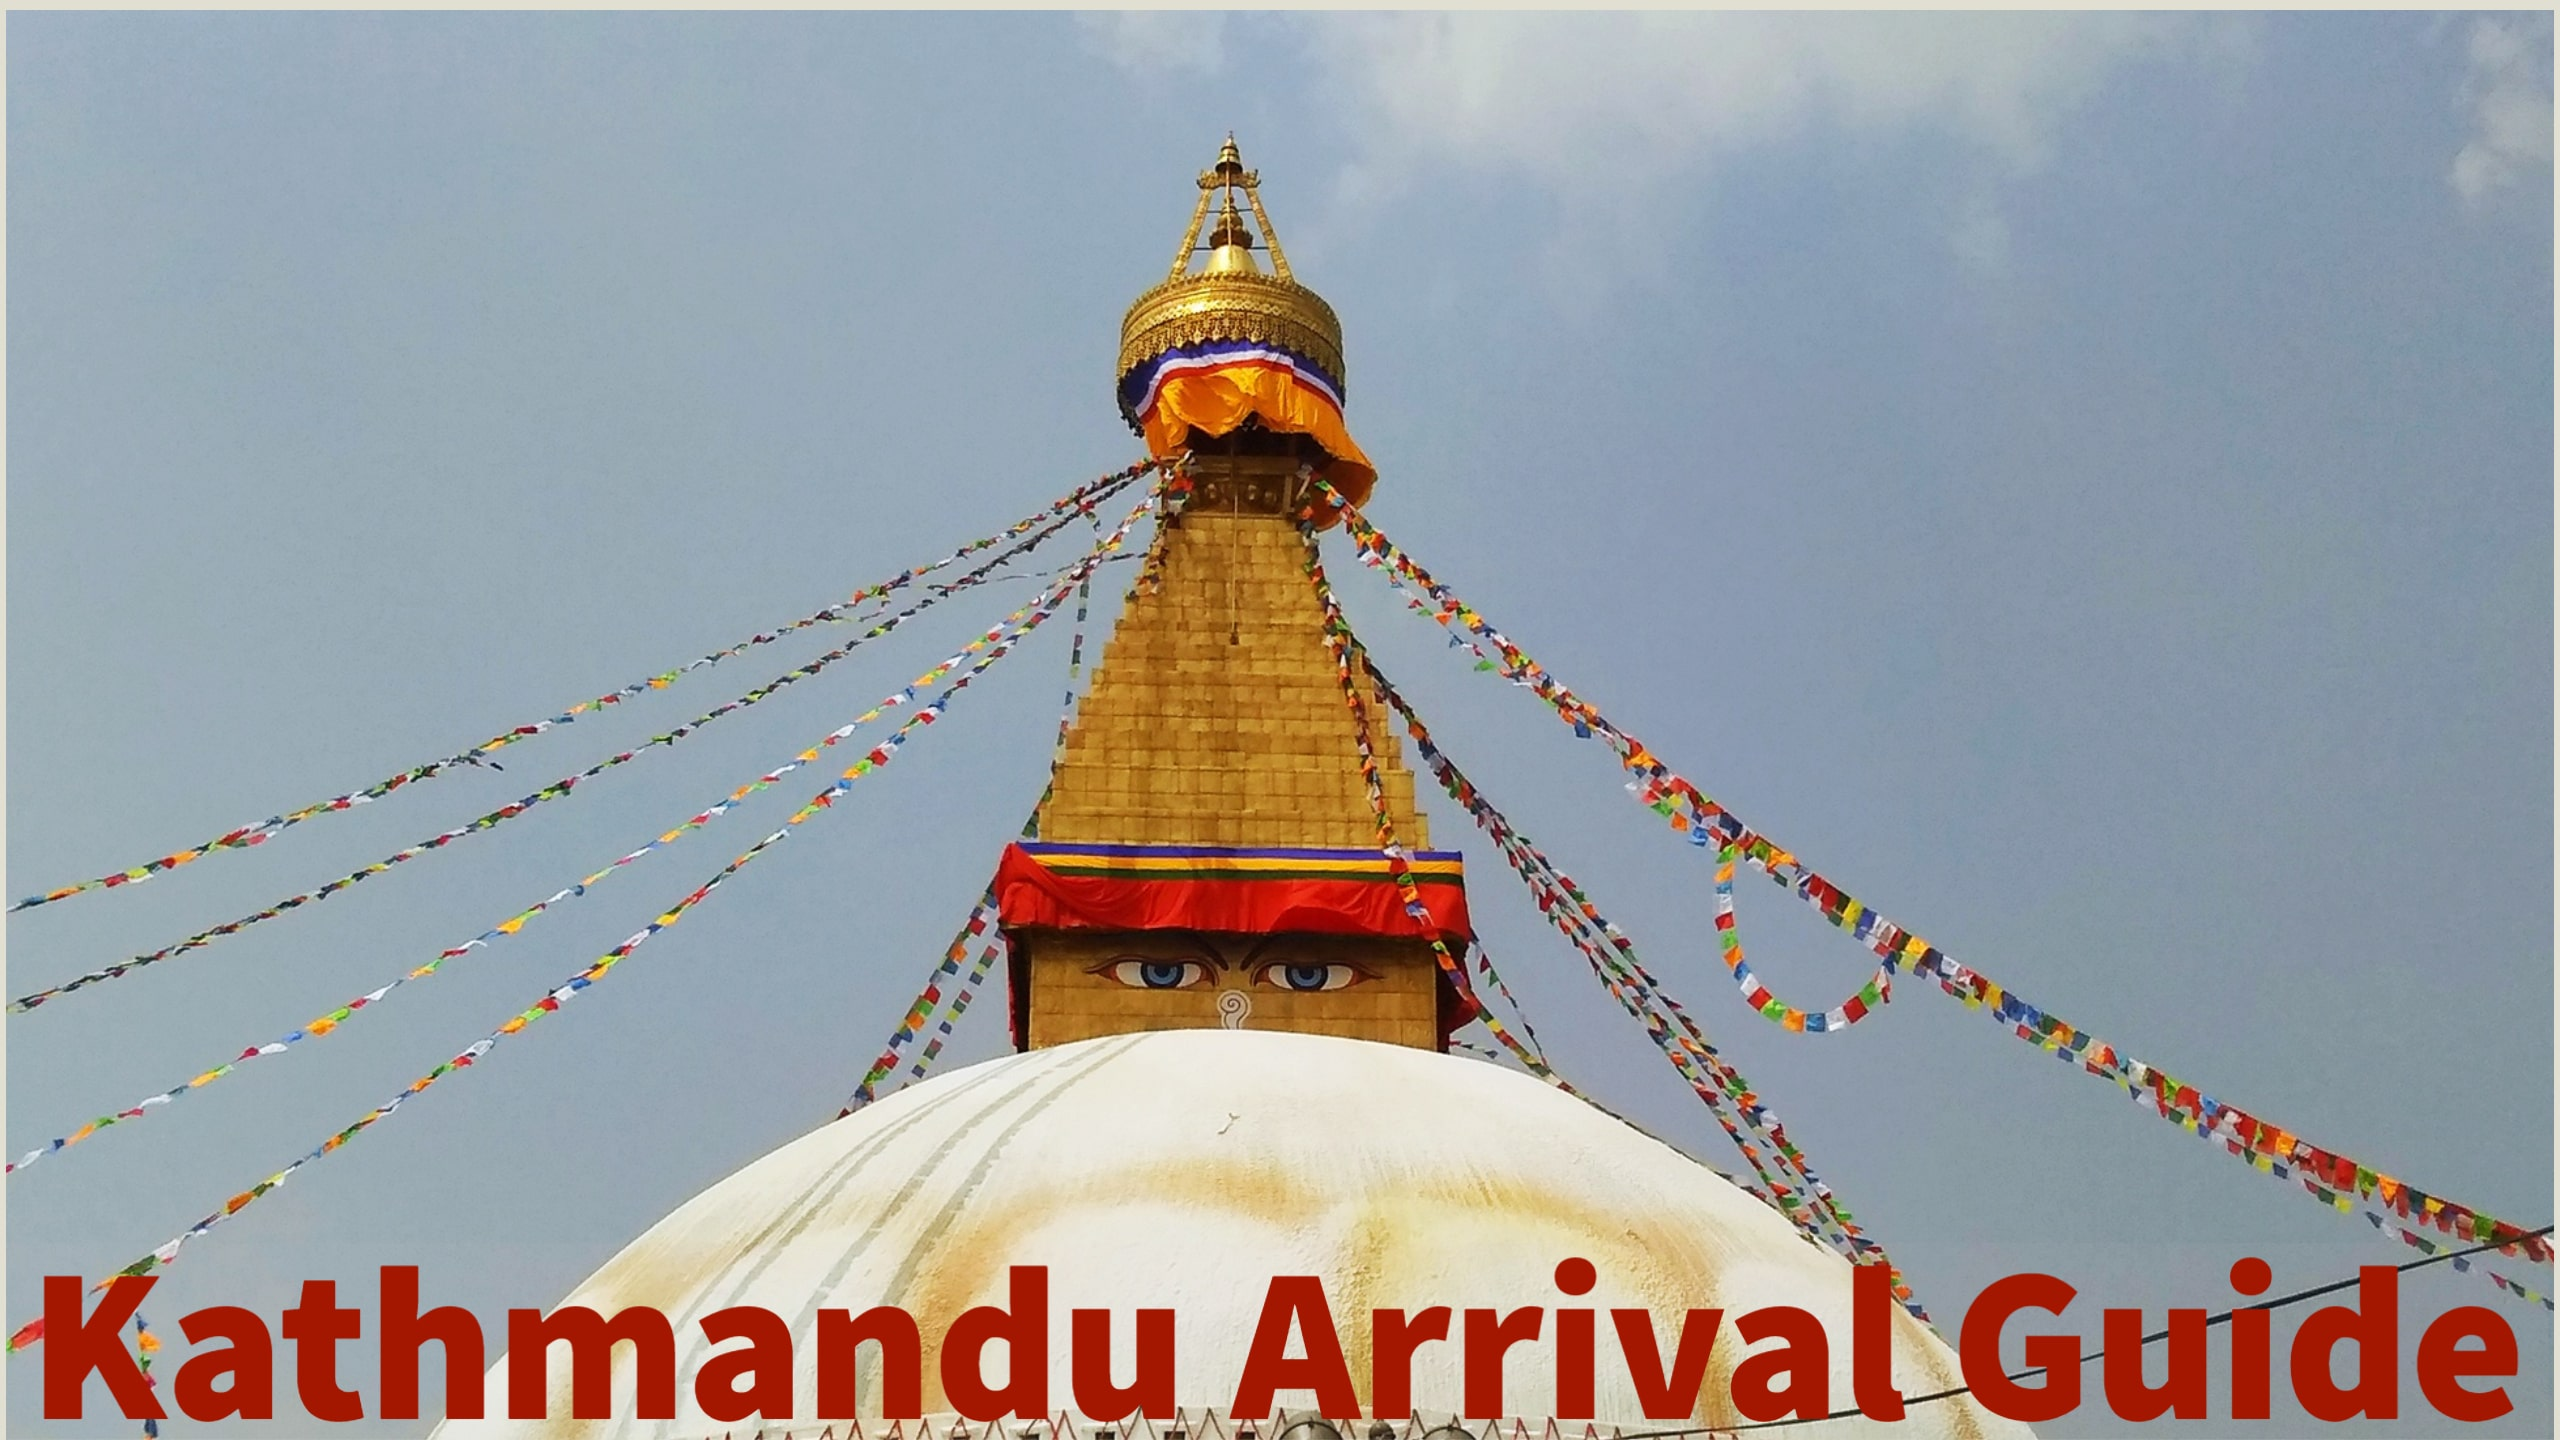 Kathmandu Arrival Guide: From Airport To The Sites